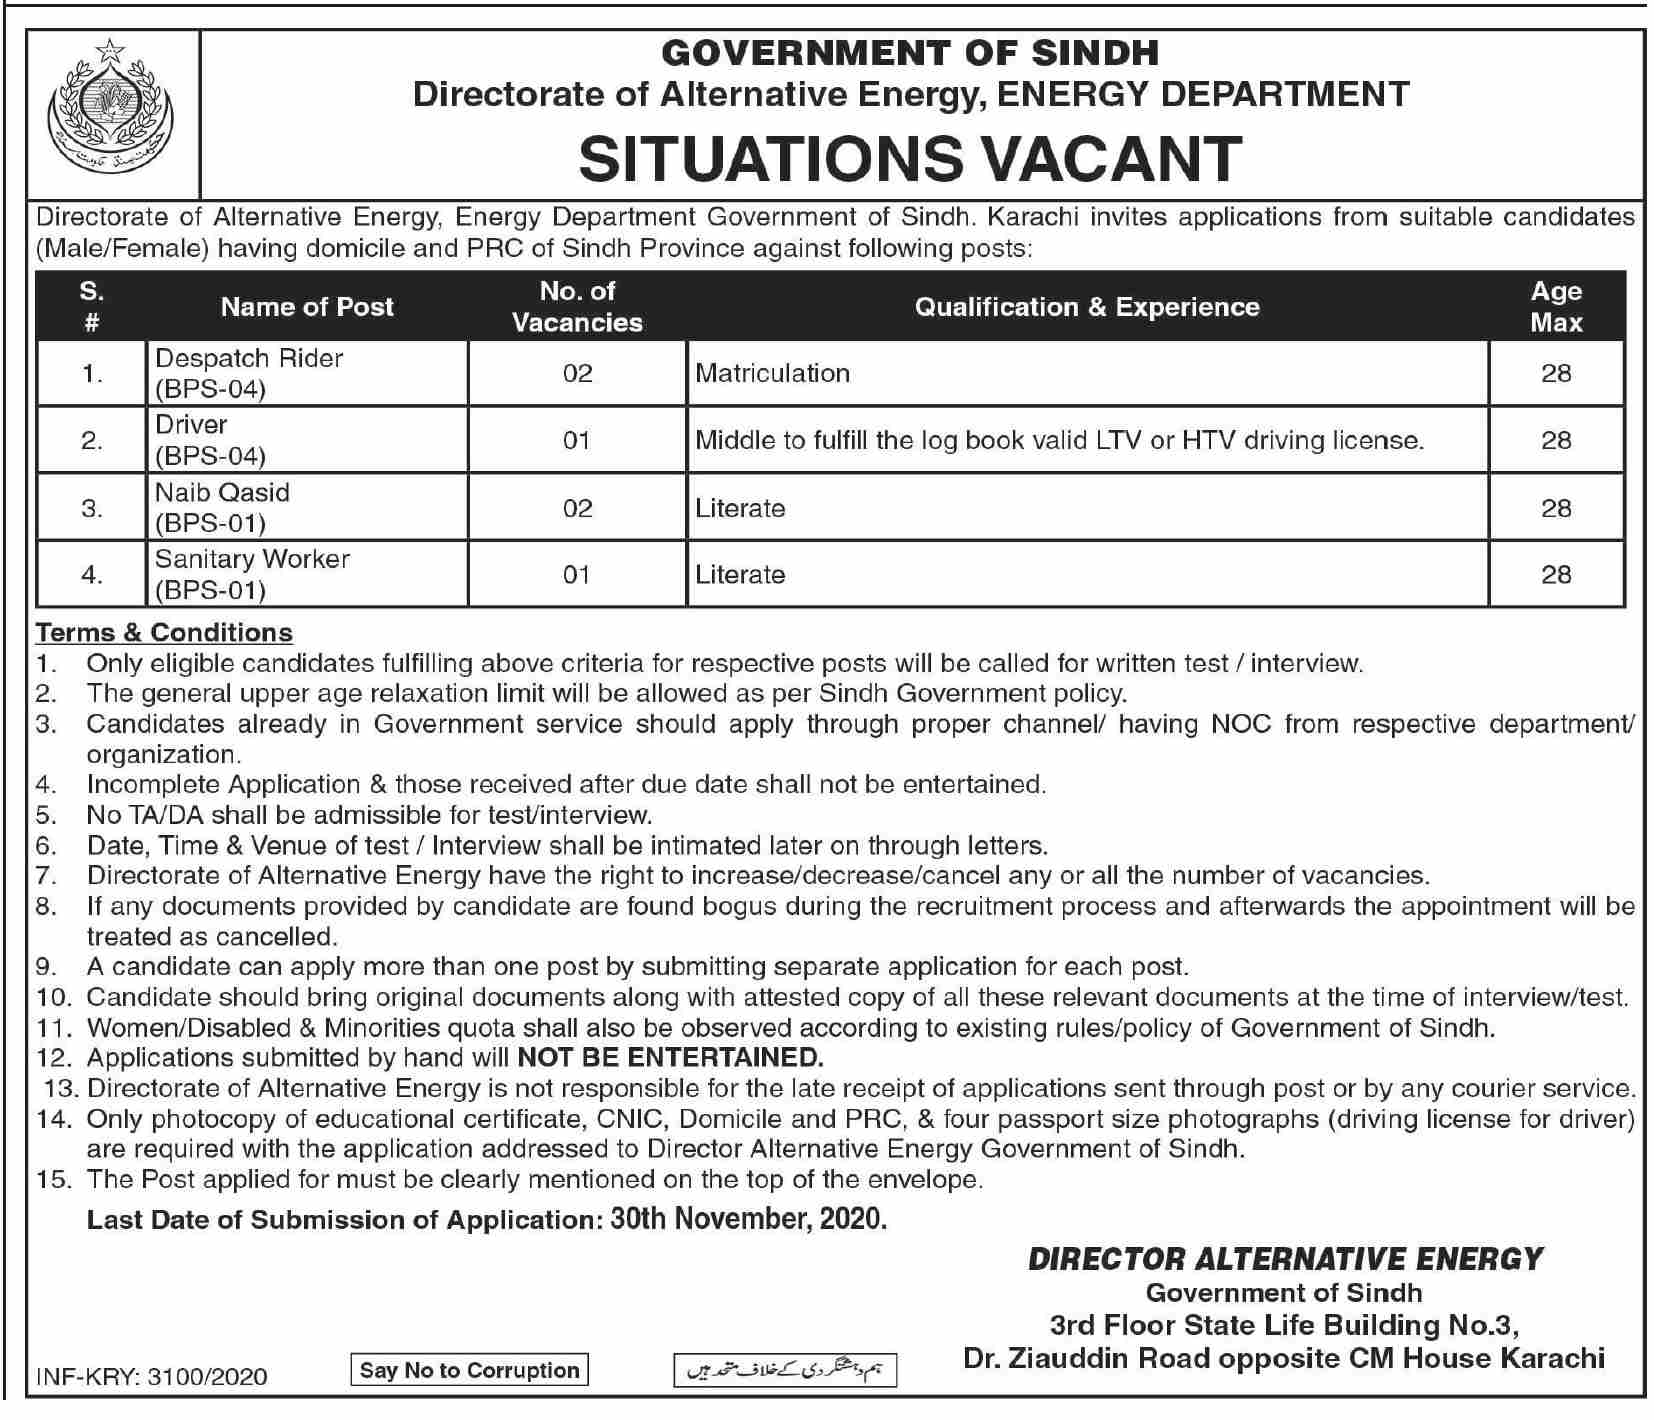 Energy Department Government of Sindh Jobs November 2020